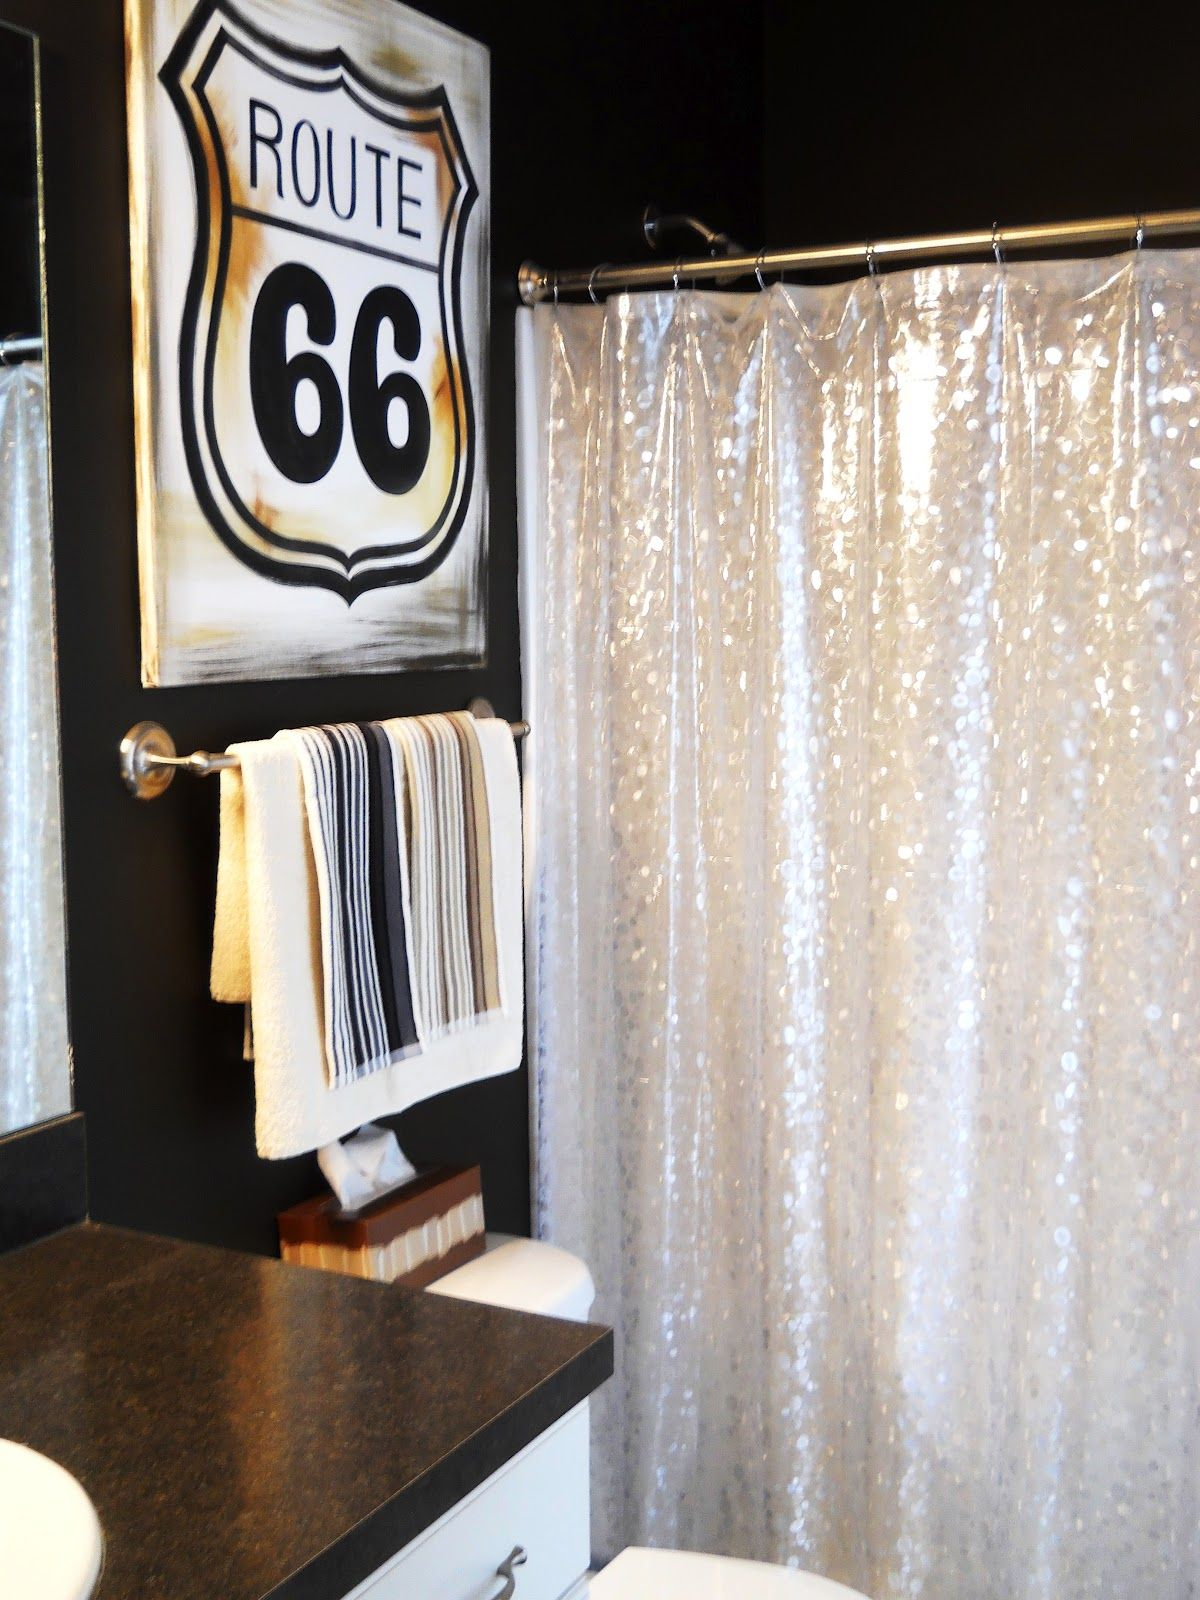 Pin On Route 66 Decor